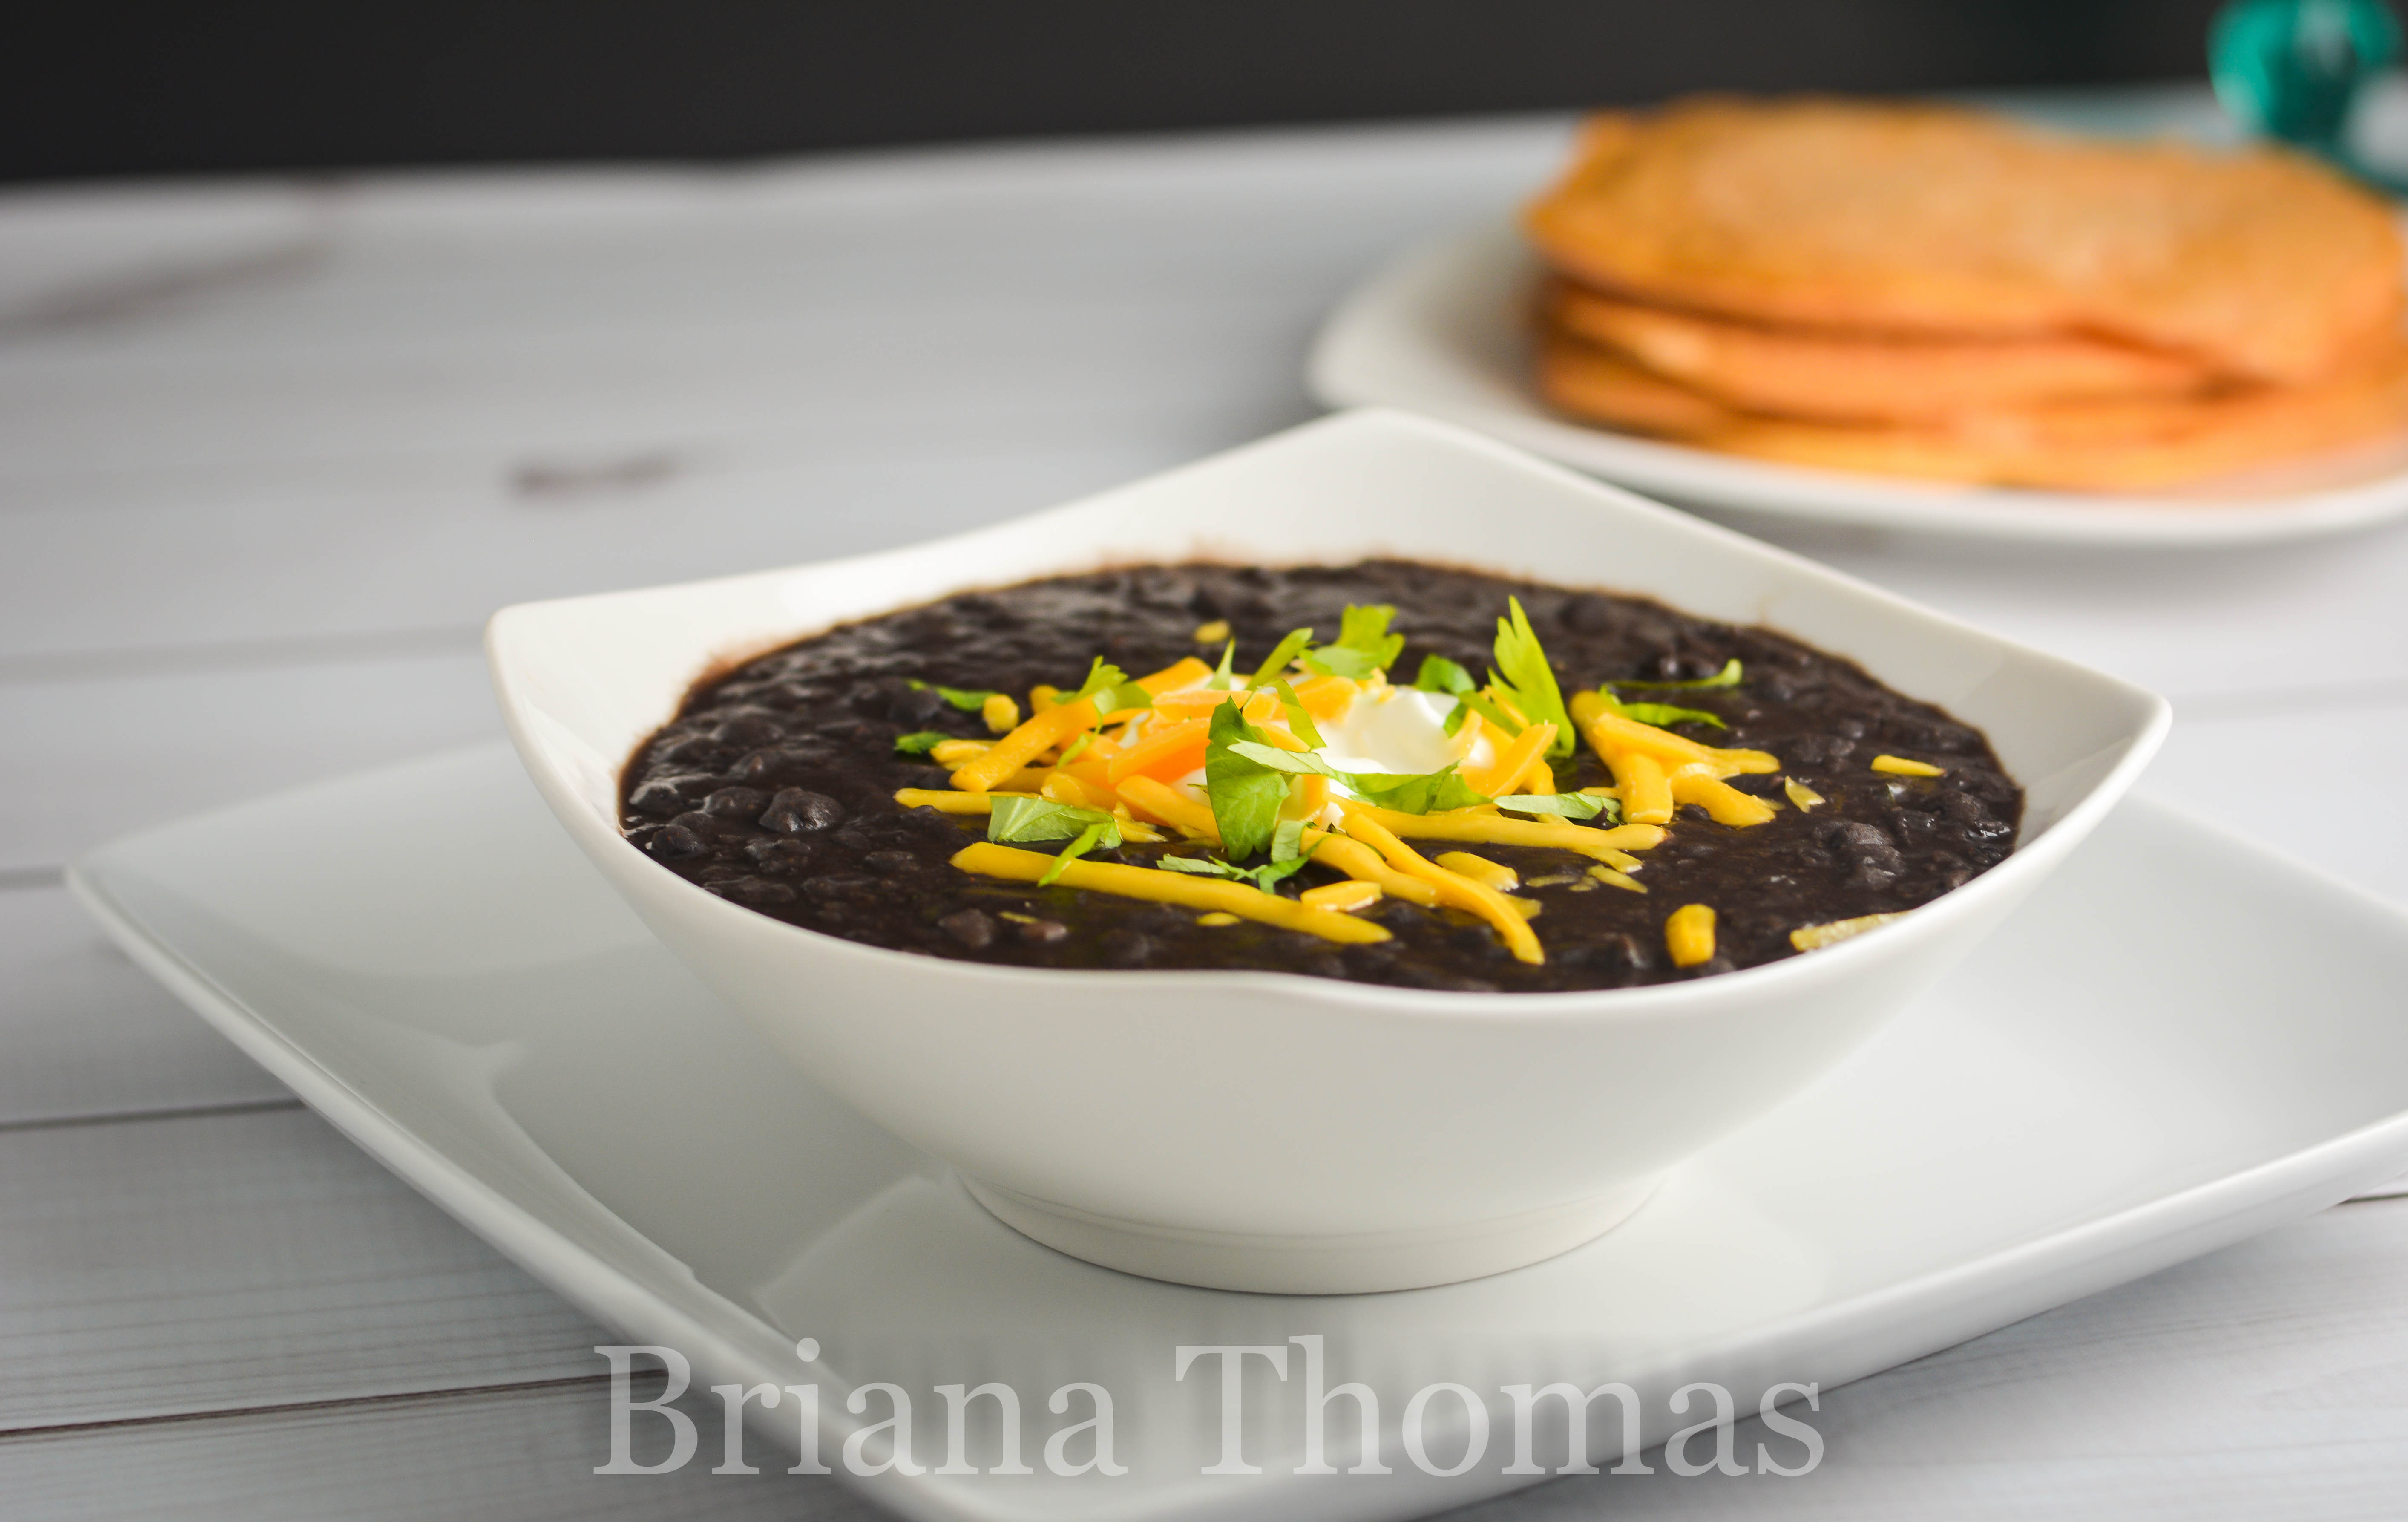 This Crockpot Black Bean Stew is a budget-friendly meal that doesn't skimp on flavor! THM:E, low fat, gluten/egg/dairy/nut free